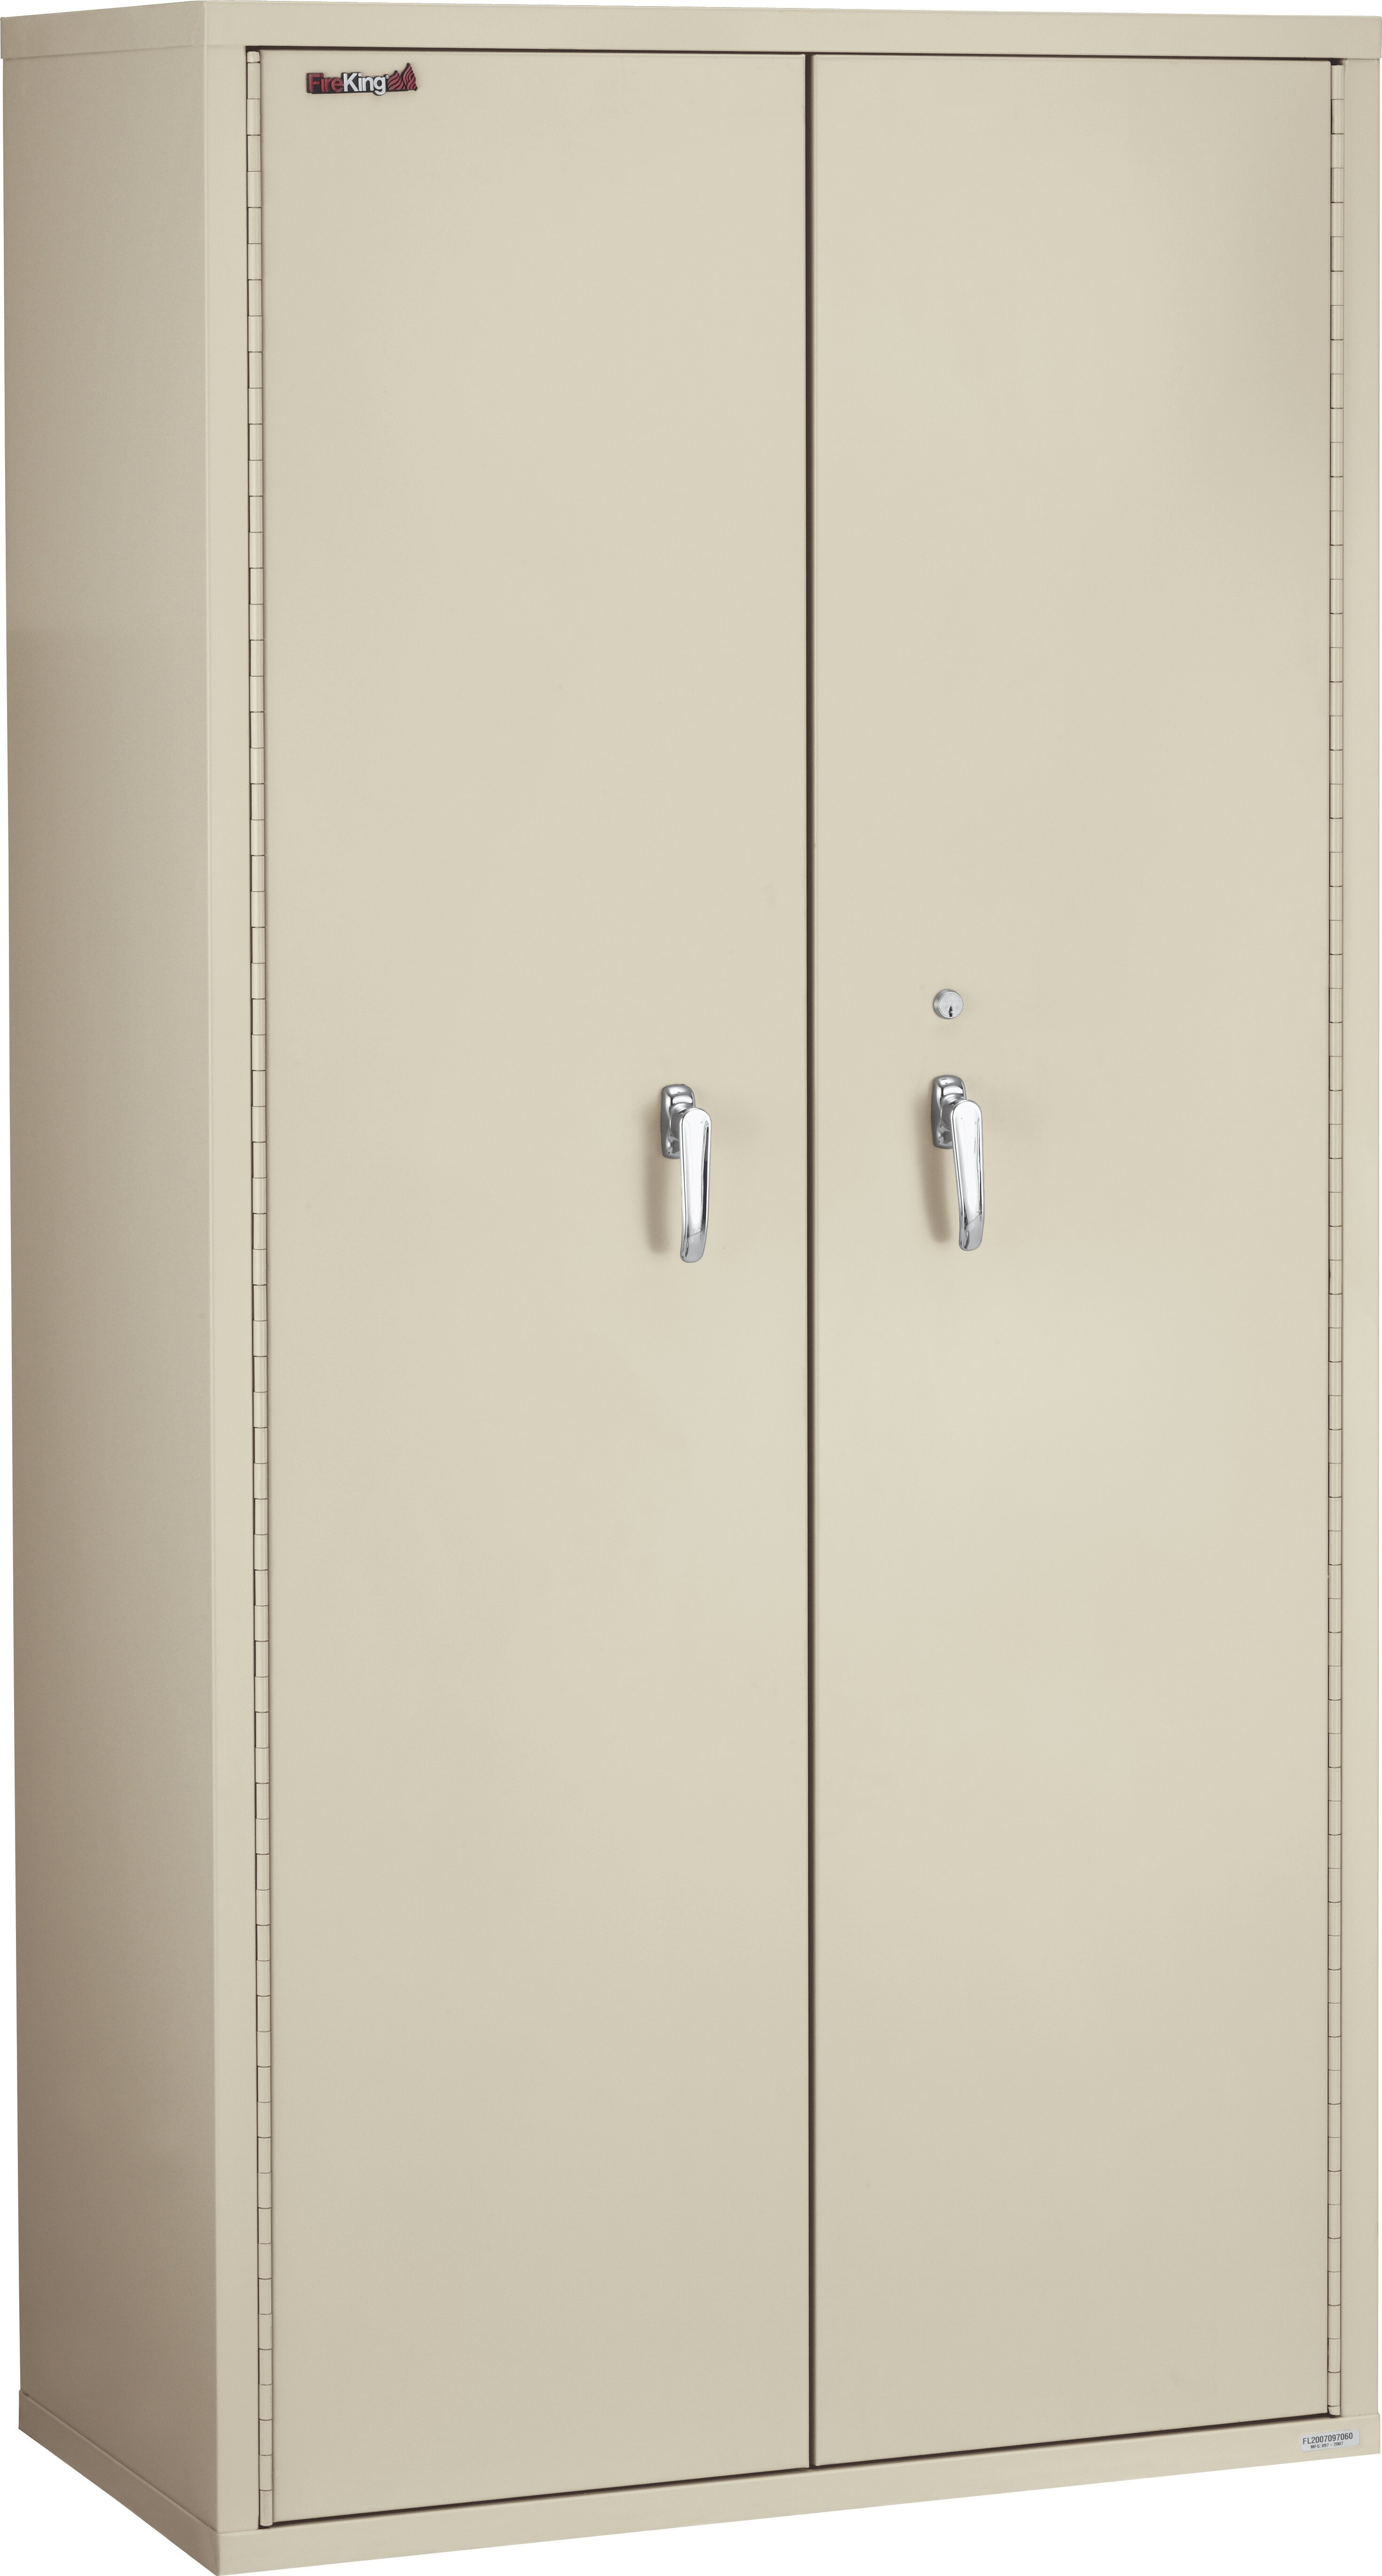 Double Door Storage Cabinet Awesome Fireproof Double Door Storage Cabinet